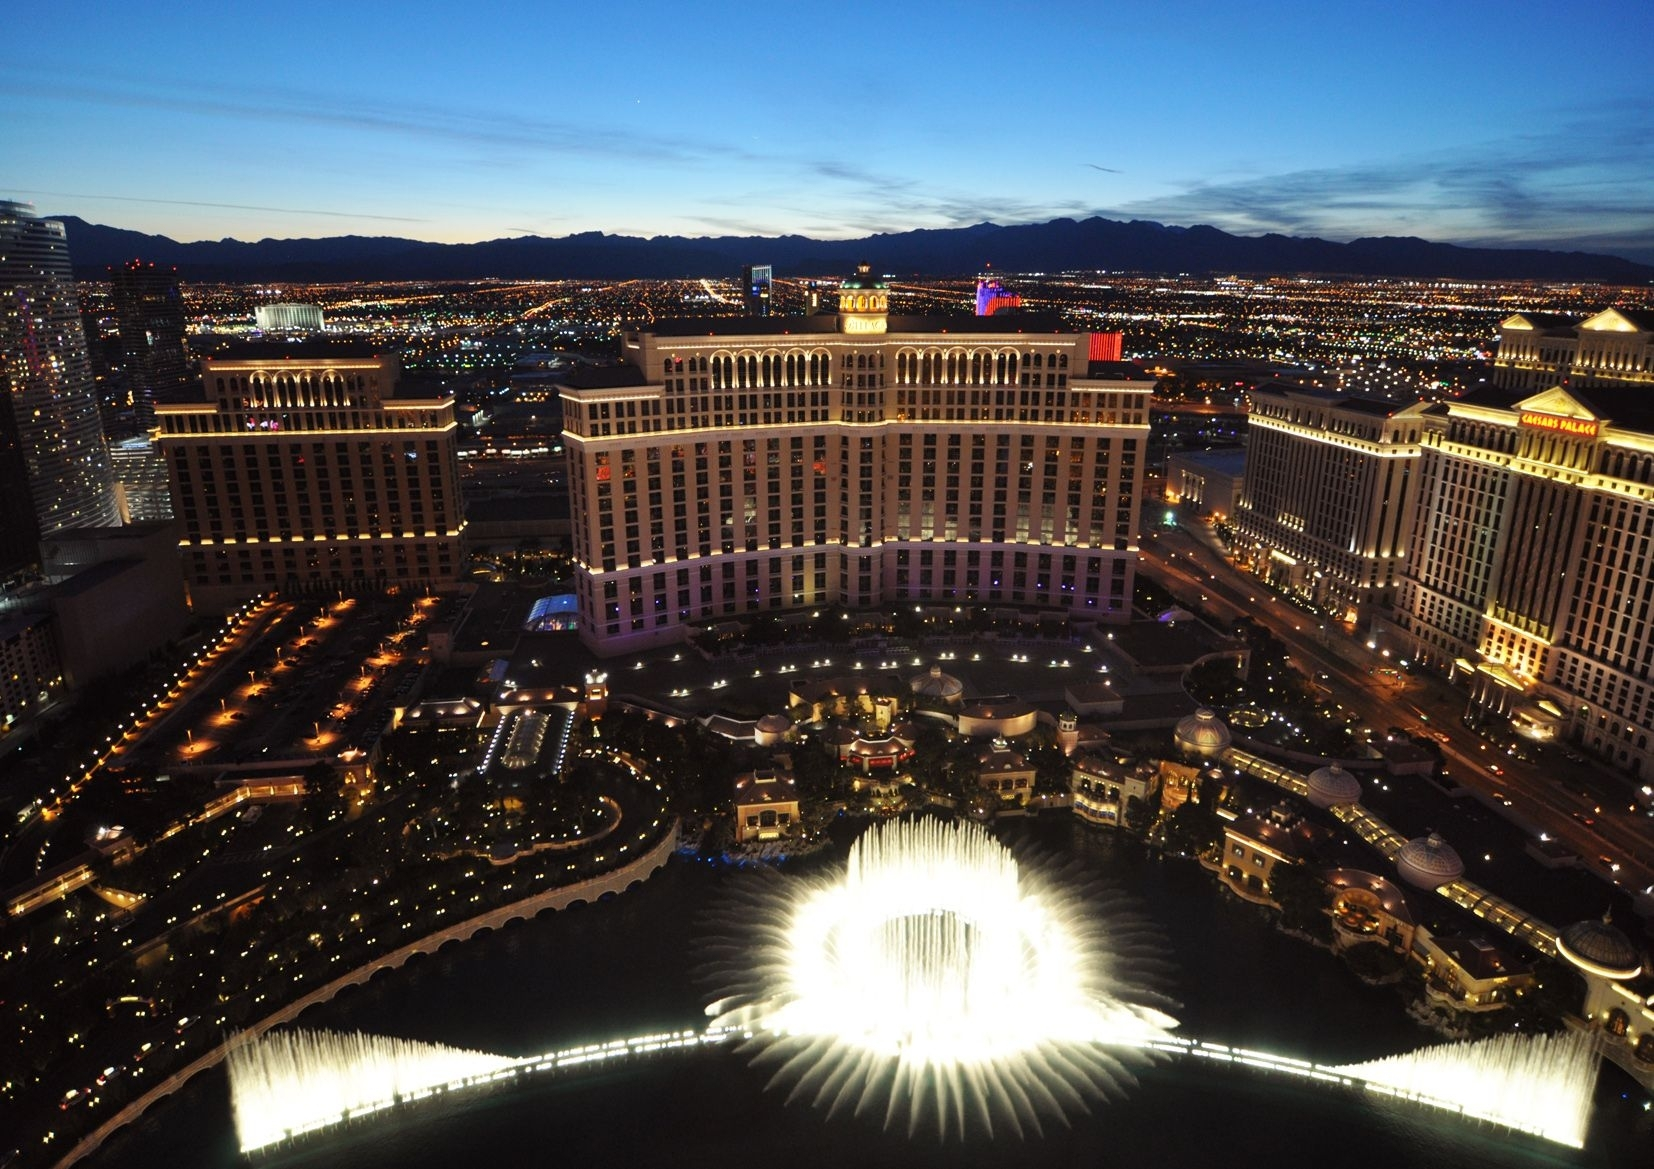 The Bellagio Fountains Las Vegas Nevada. Print Poster Canvas Regarding Most Popular Las Vegas Canvas Wall Art (Gallery 9 of 15)